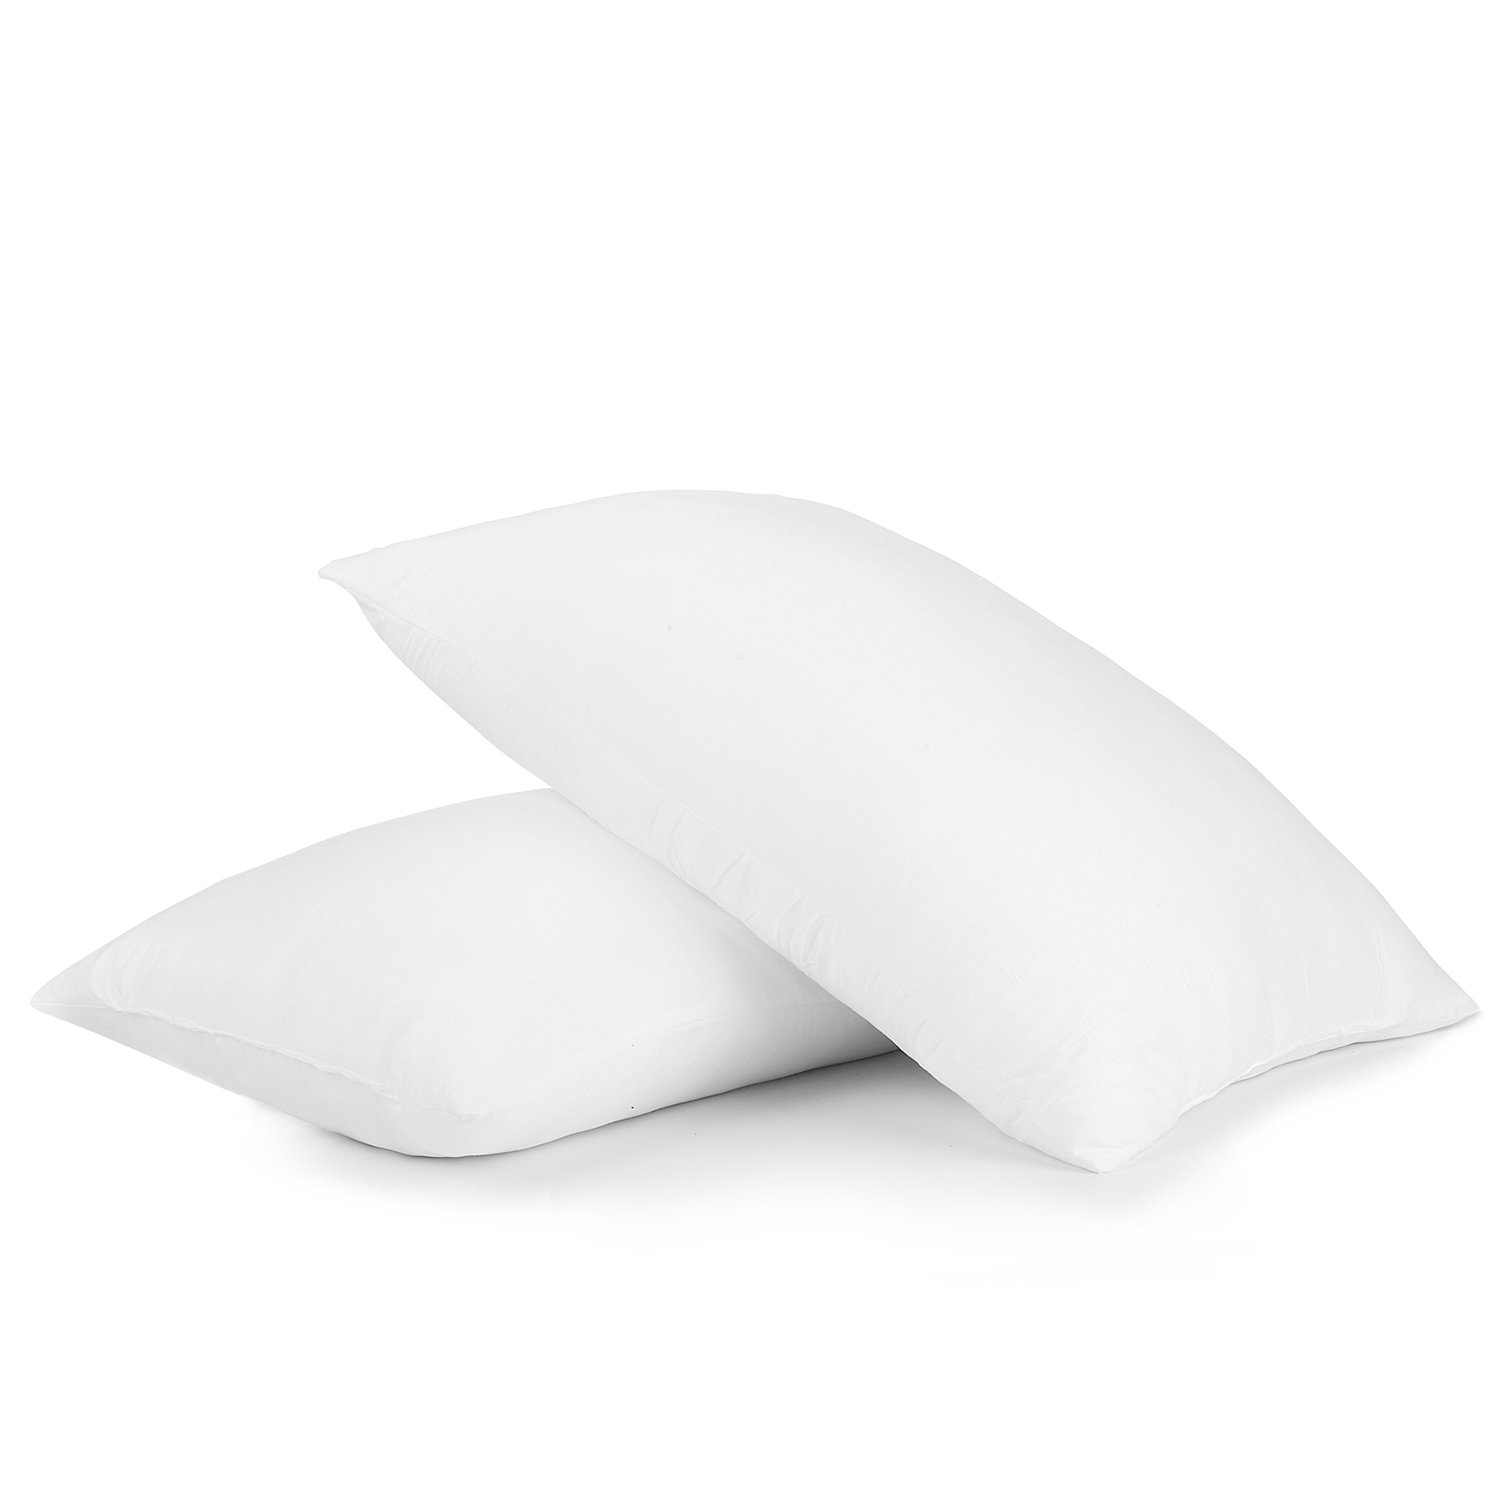 Acanva Hypoallergenic Soft Bed Pillows For Sleeping, Standard, 20'' x 26'', 2 Pack